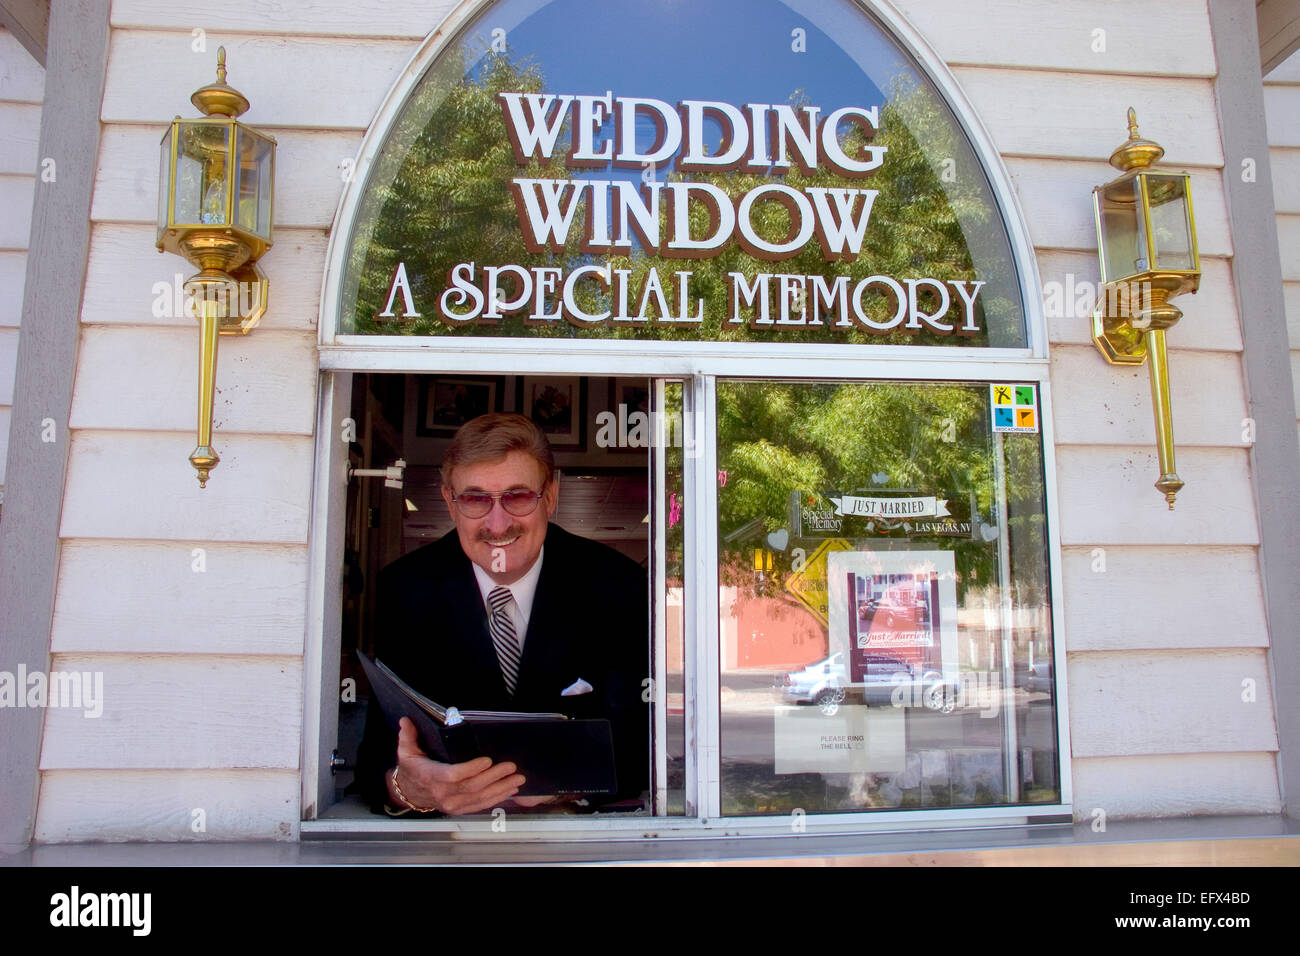 a drive up wedding chapel called a special memory does a